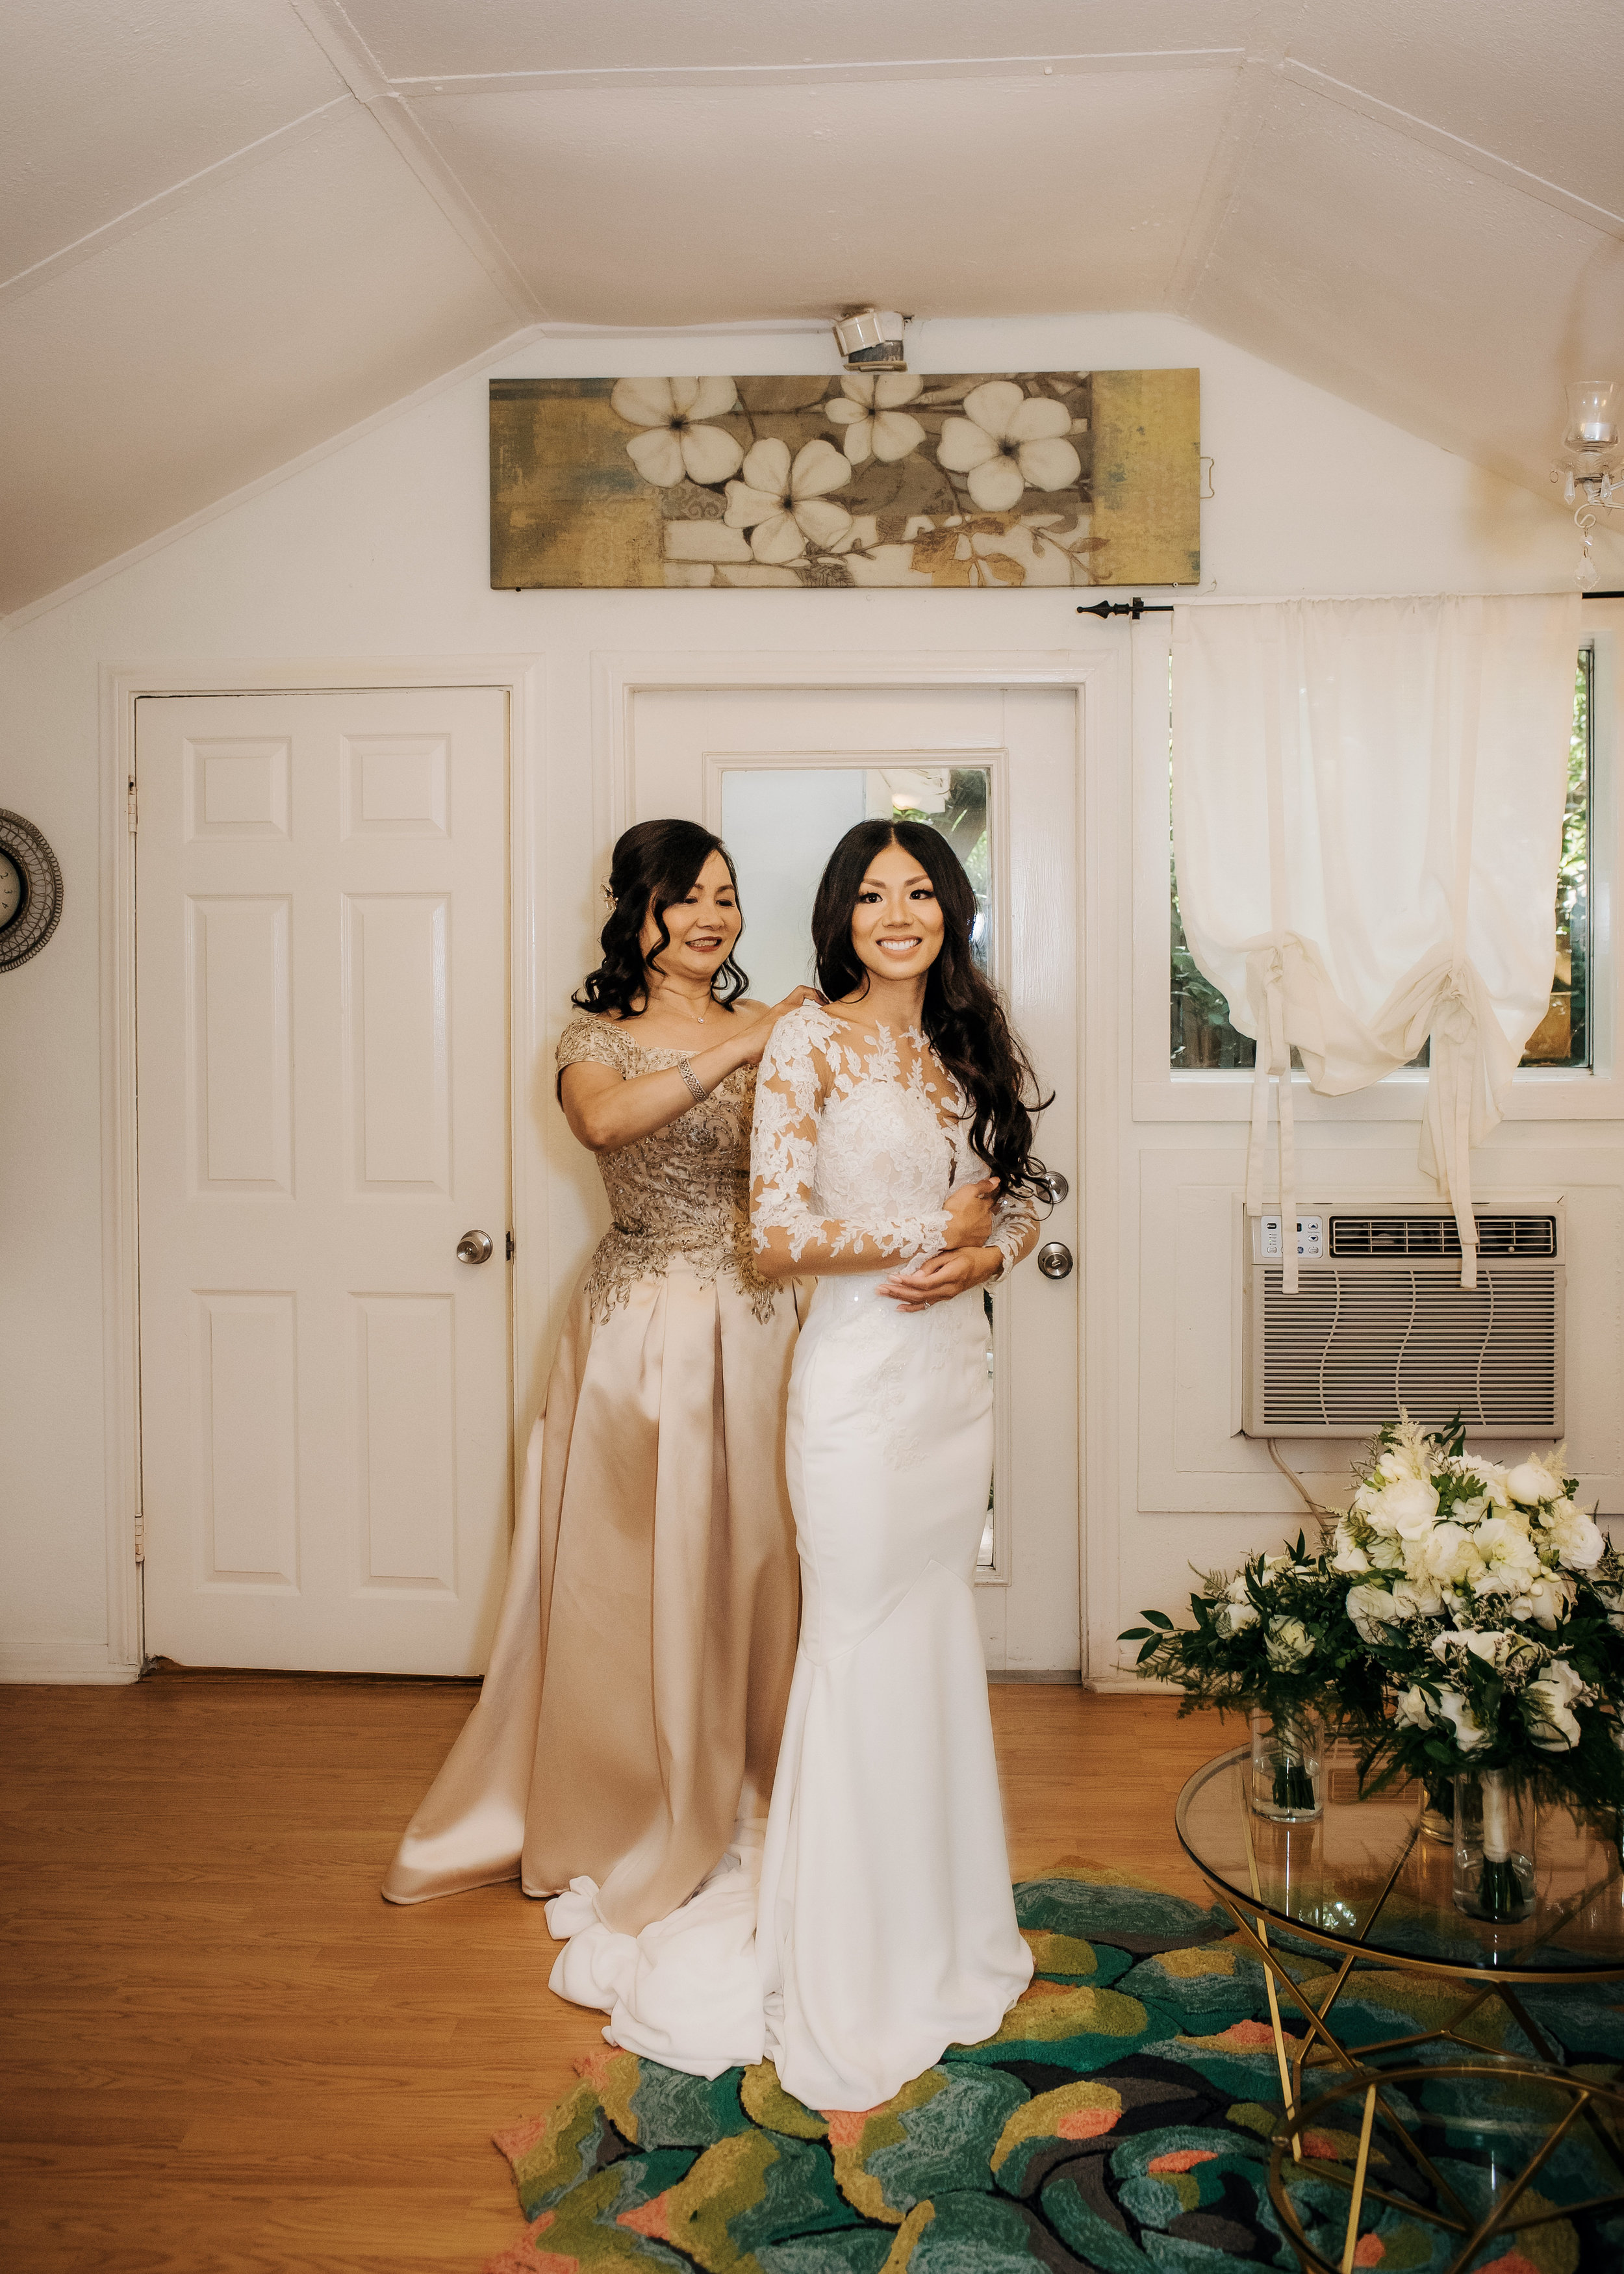 Turchin_20180825_Austinae-Brent-Wedding_093.jpg